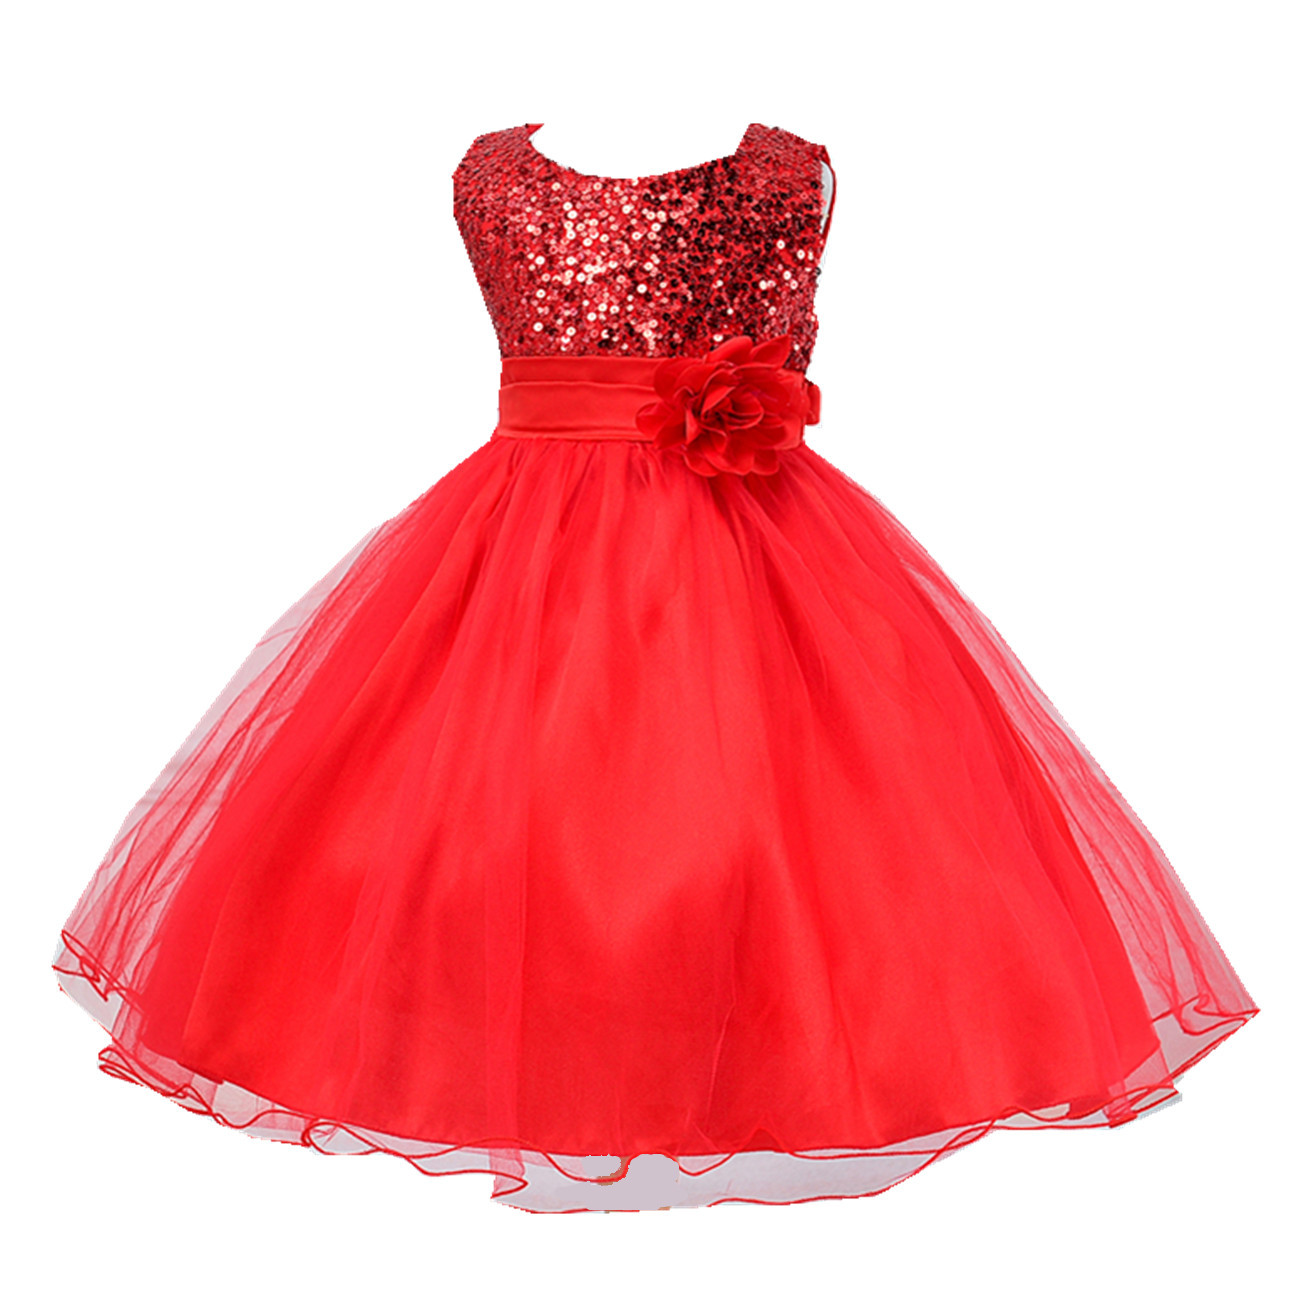 Christmas dress teen - Flower Girl Dress For Wedding Party Petals Tulle Dresses Teen Girls Clothes Children S Clothing Christmas Party